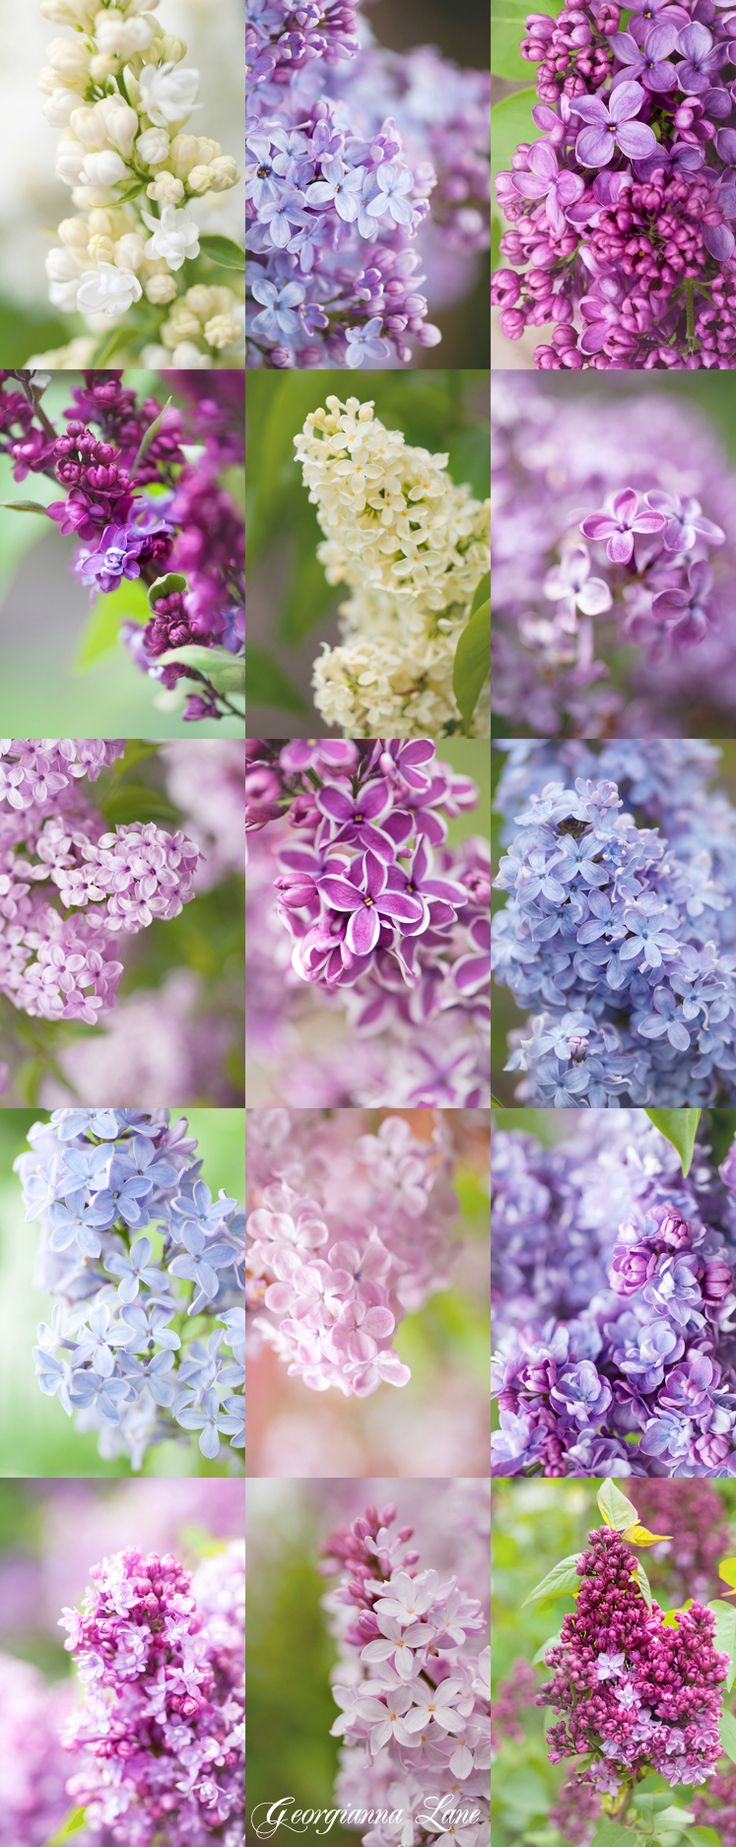 Many types and Colors of Lilacs!